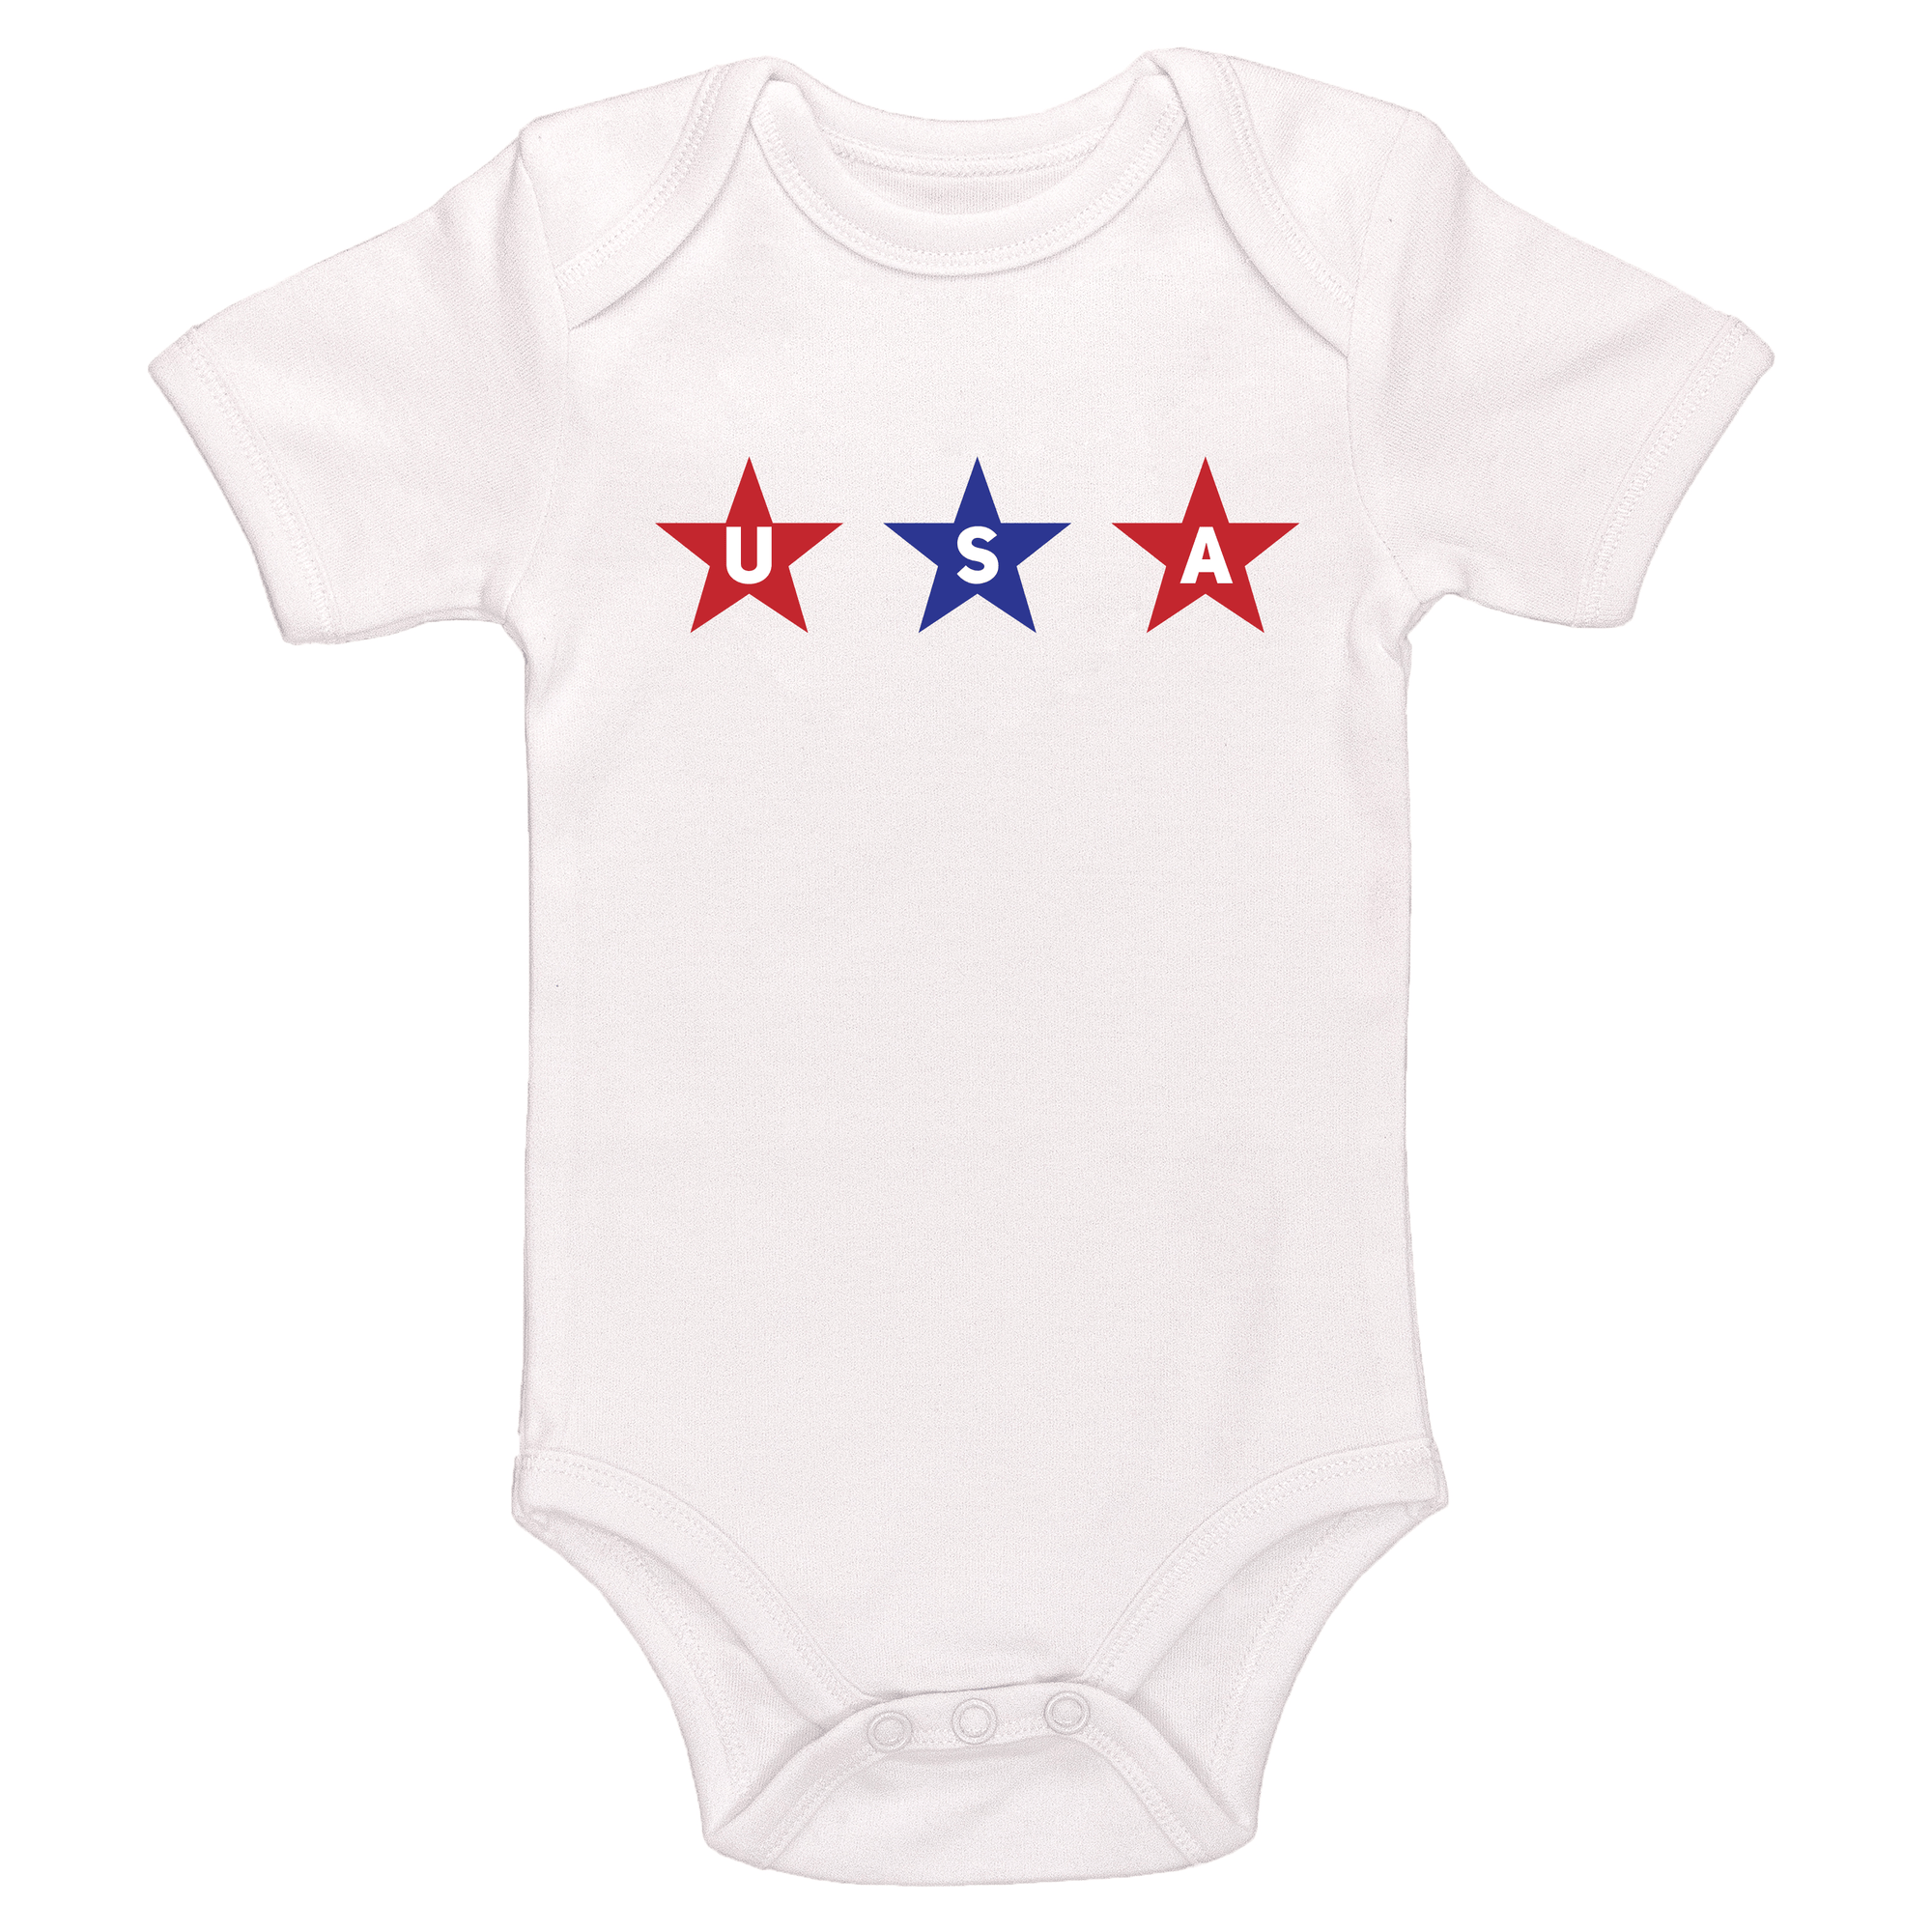 USA Stars Baby / Toddler Bodysuit